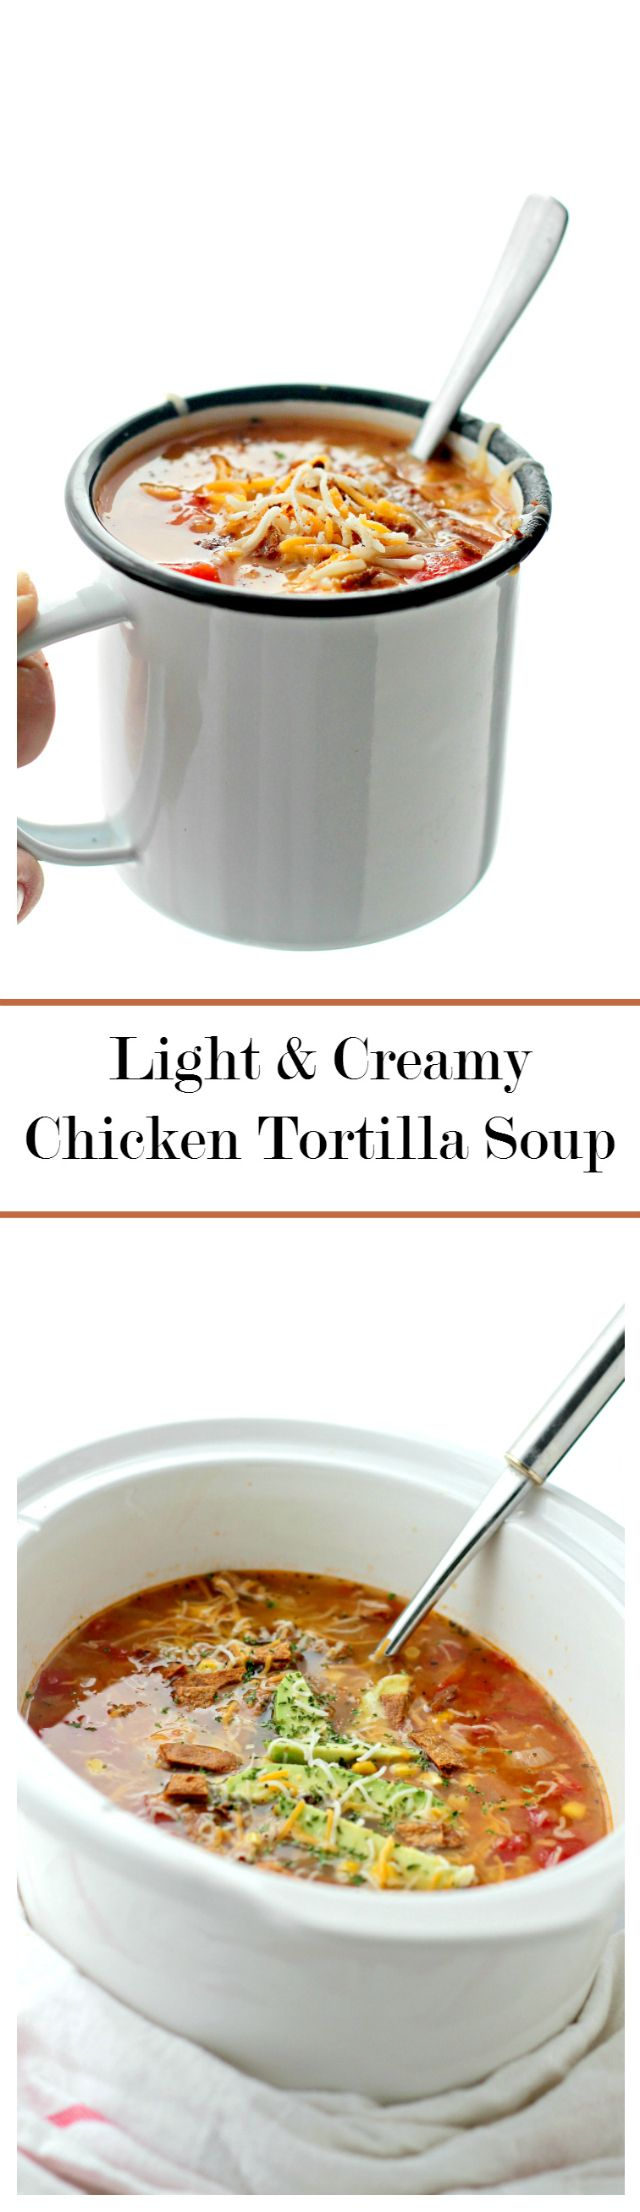 Light and Creamy Chicken Tortilla Soup | www.diethood.com | This hearty Chicken Tortilla Soup is filled with shredded chicken, tomatoes, corn and creamy refried beans. All the creamy comfort without the cream! {Use GF Tortilla Strips}